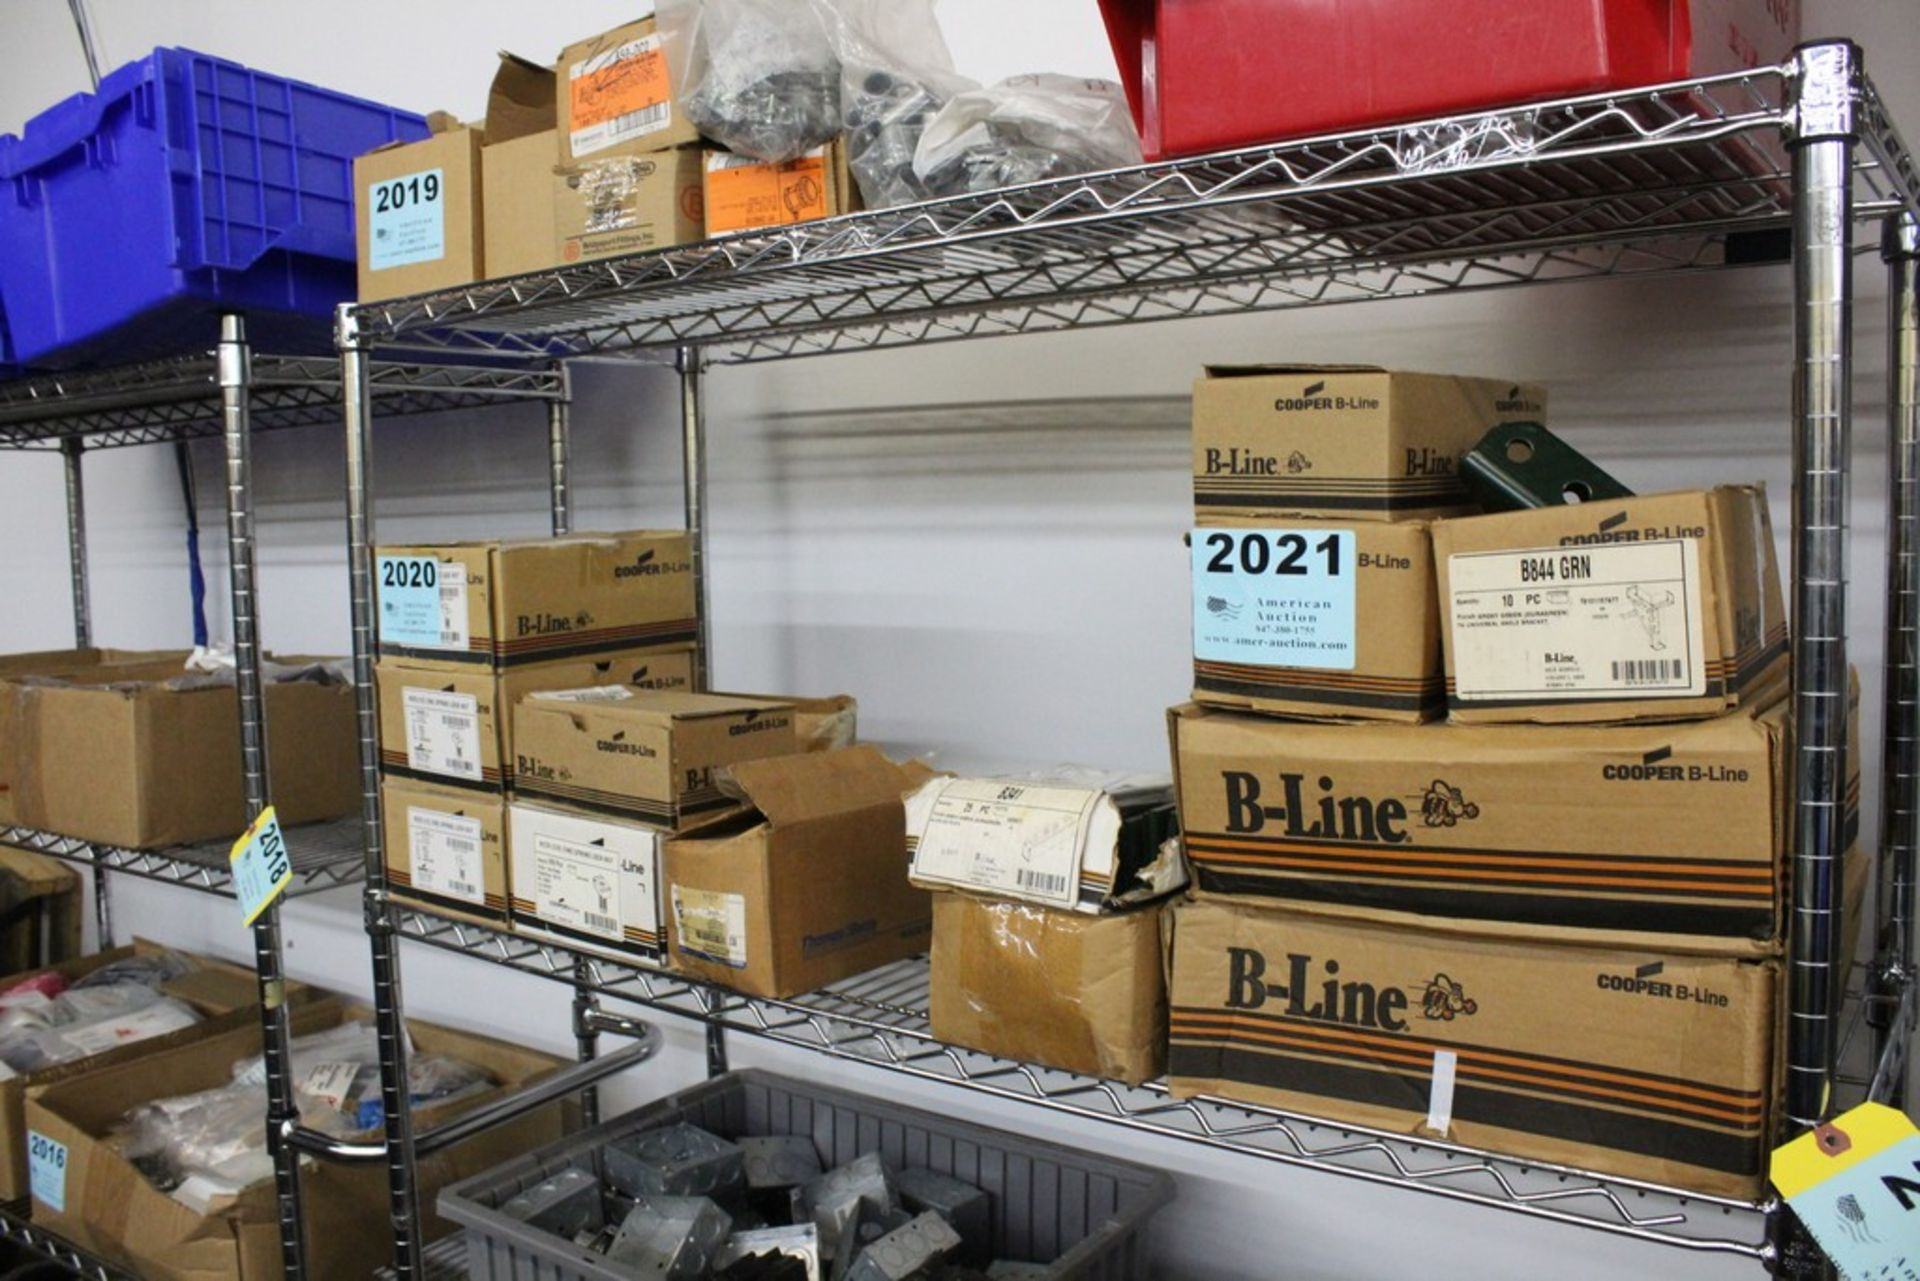 Lot 2020 - WIRING COMPONENTS ON SHELF